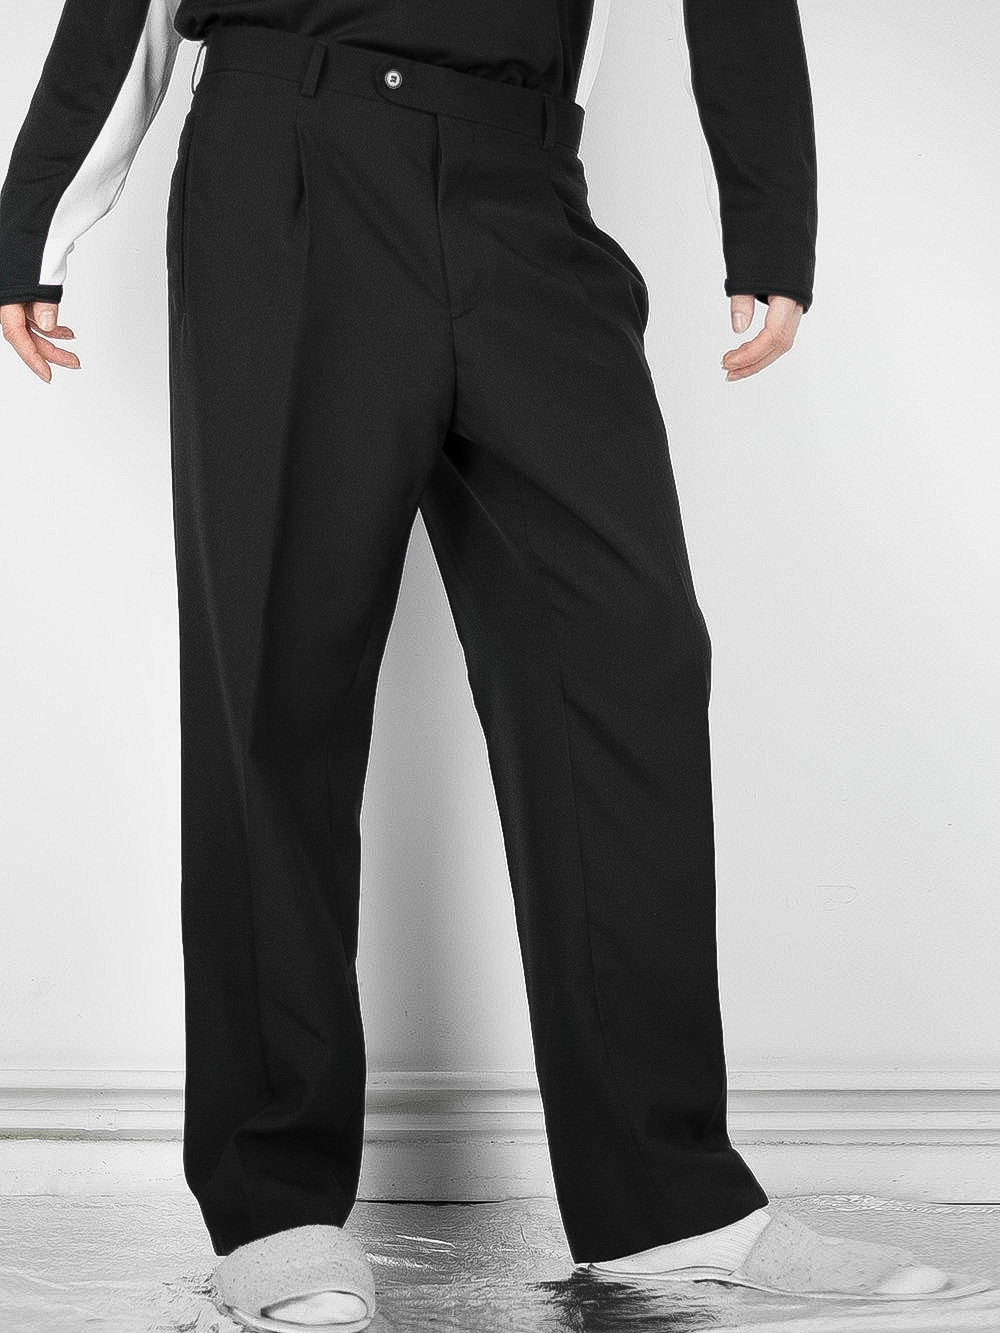 Black Trousers 43